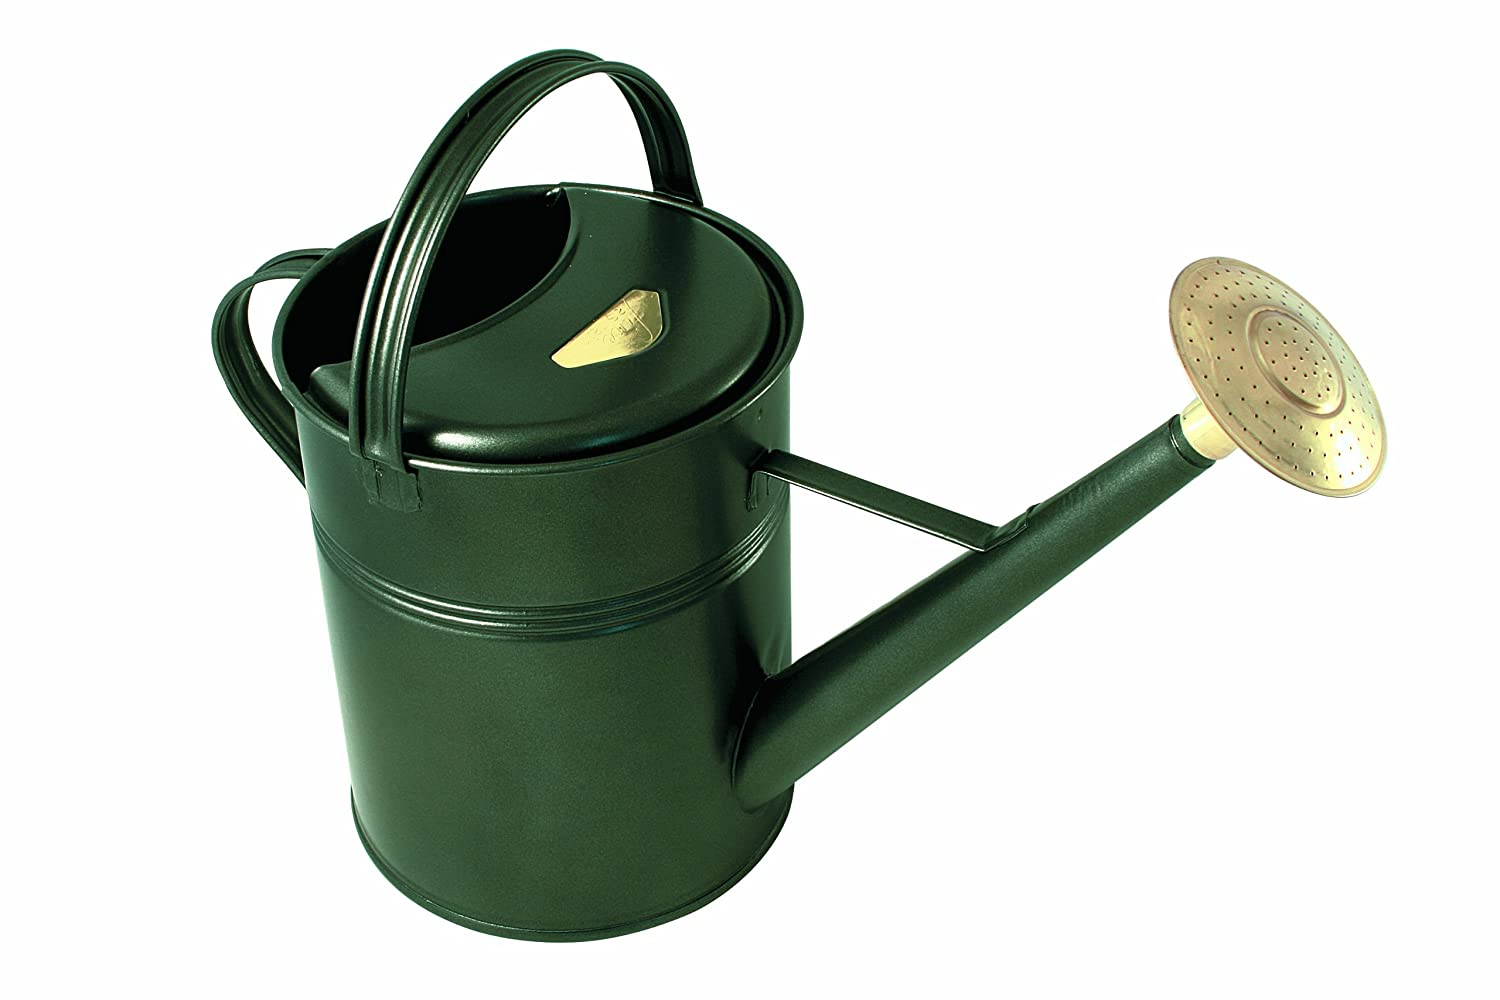 watering cans for plants